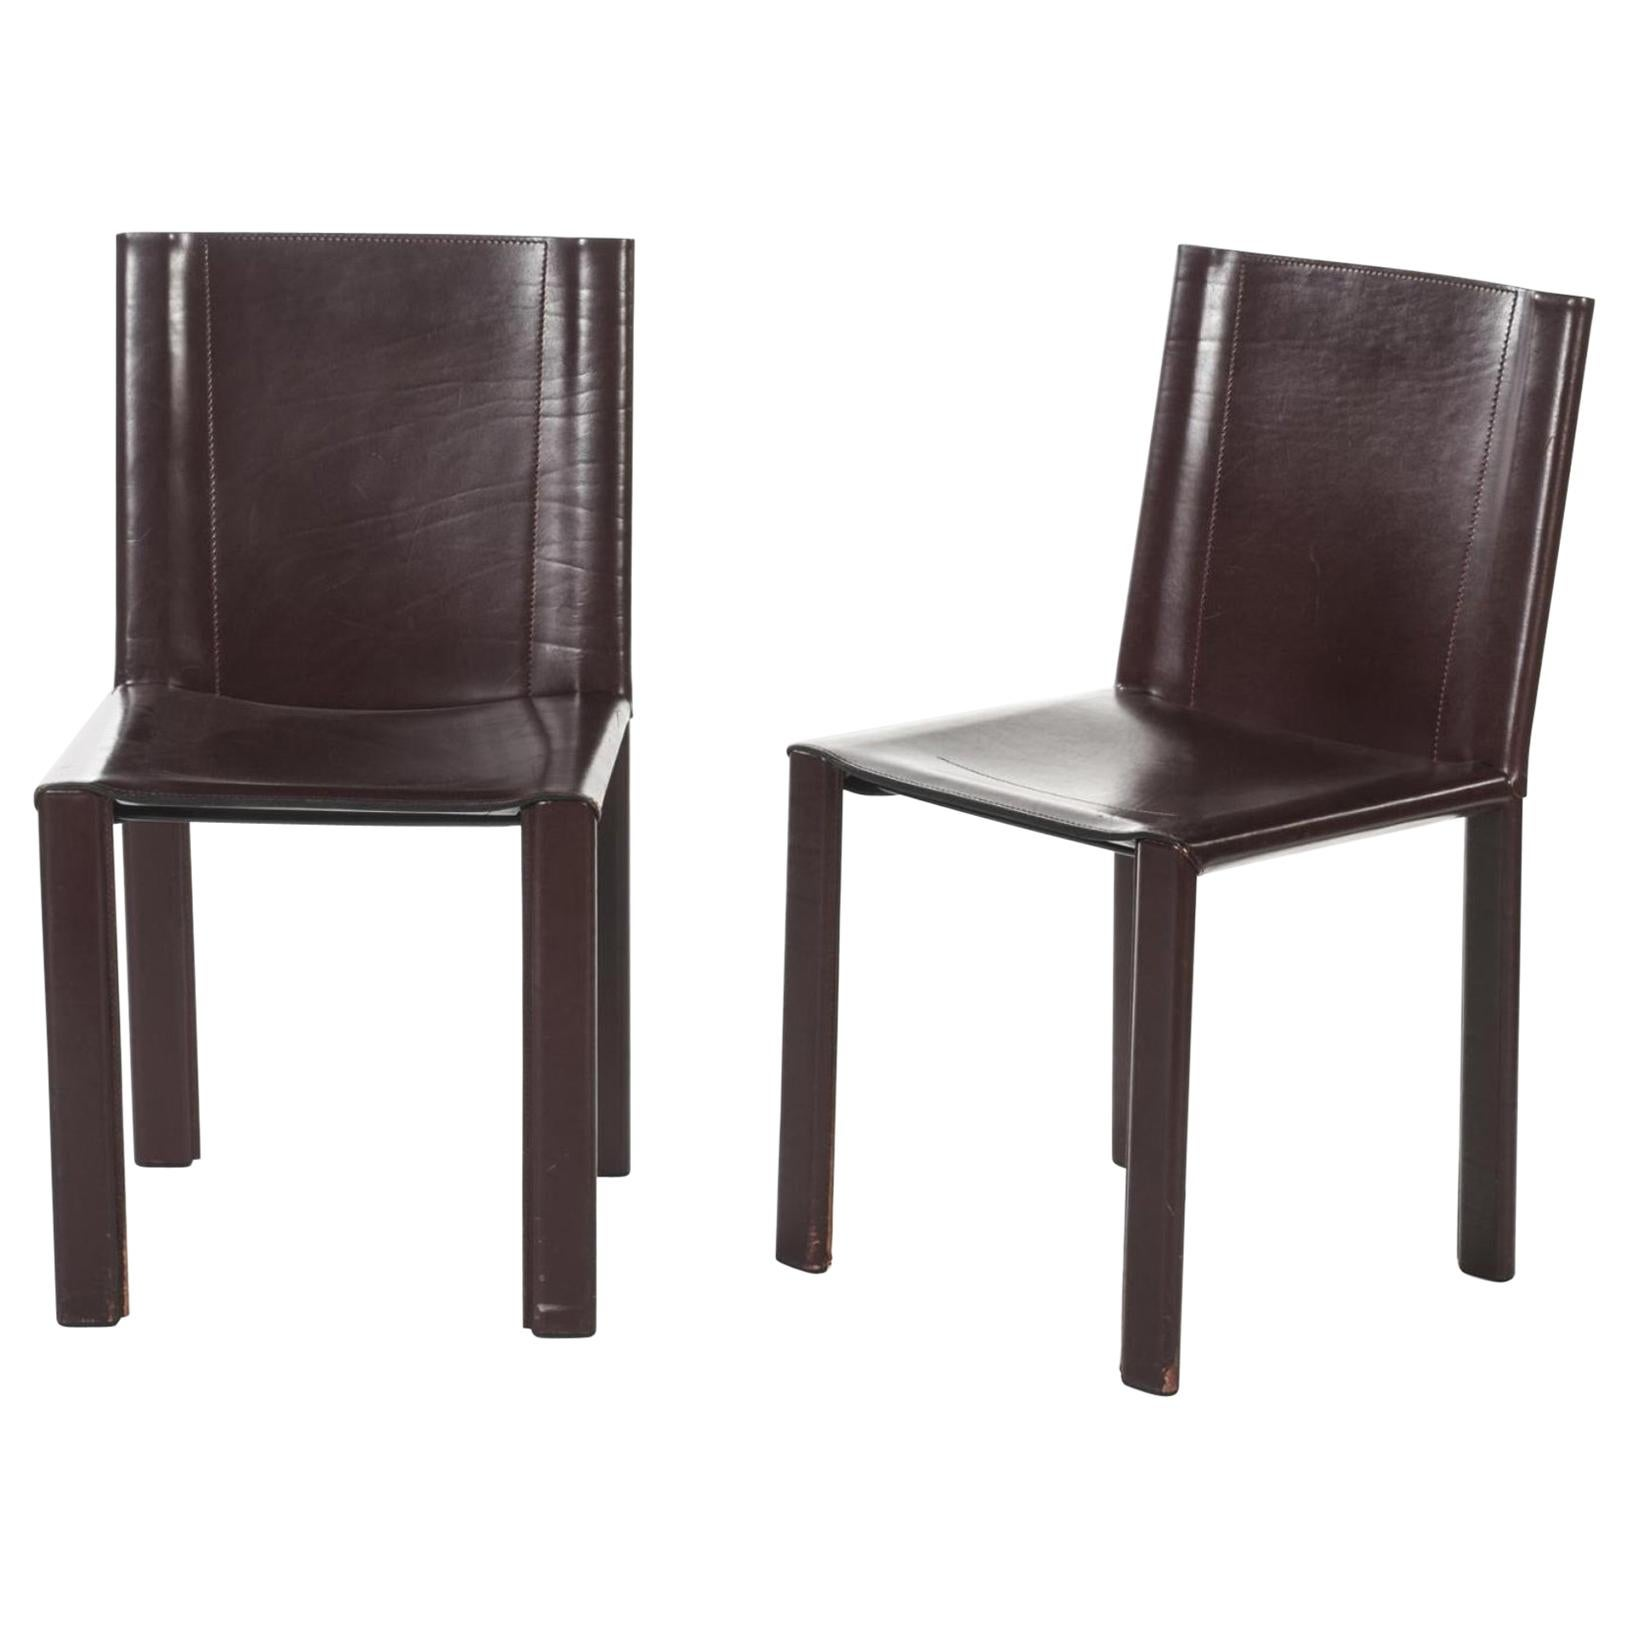 "Two Italian Chairs ""Coral"" by Matteo Grassi in Dark Red Leather"